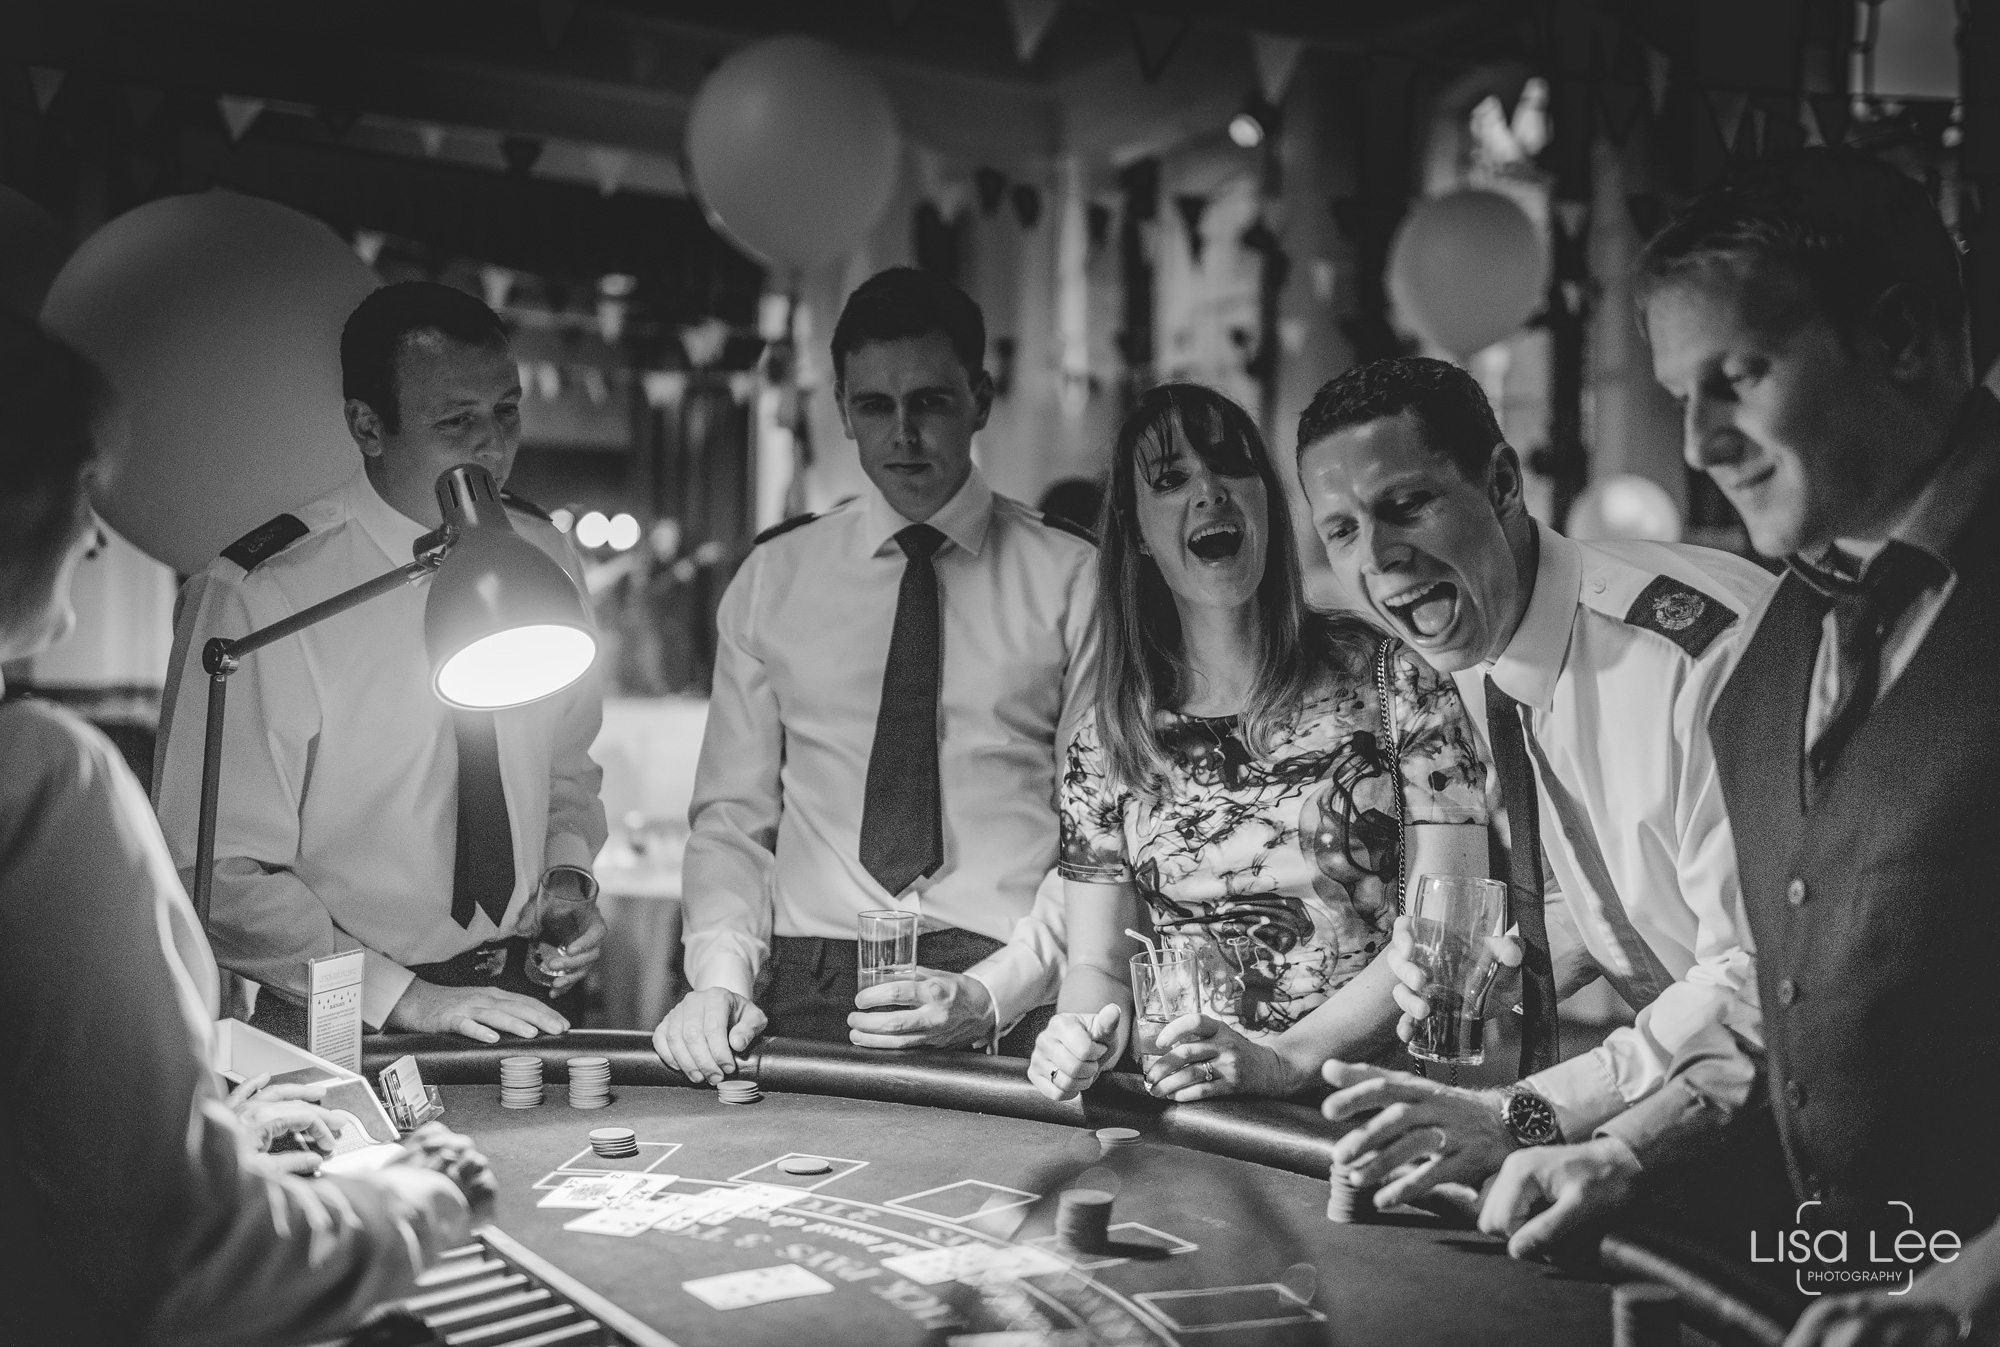 lisa-lee-wedding-photography-casino-talbot-heath-3.jpg